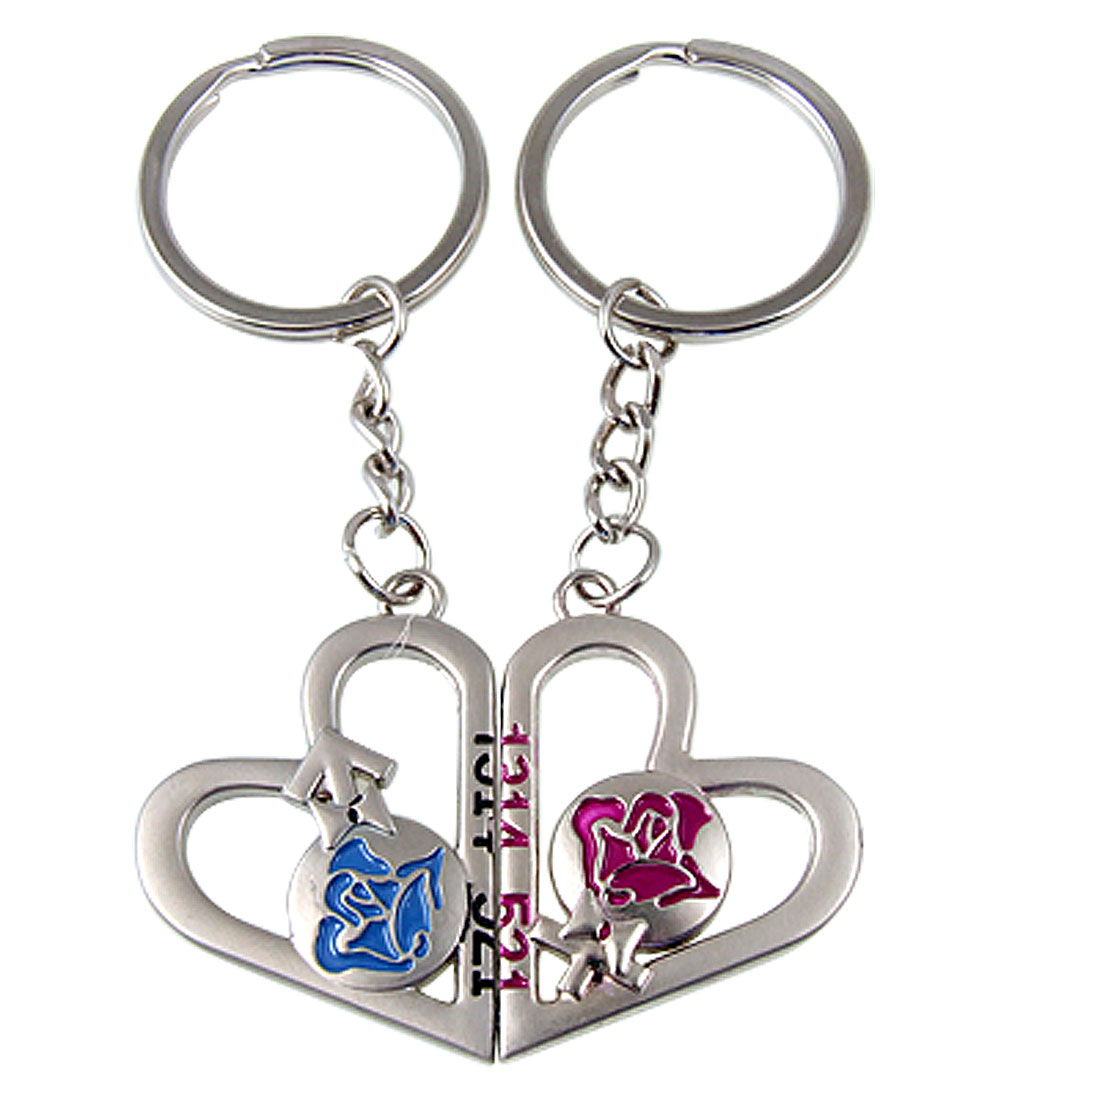 Lovers 1 Pair Magnetic Double Heart Pendant Design Metal Keyring Chain